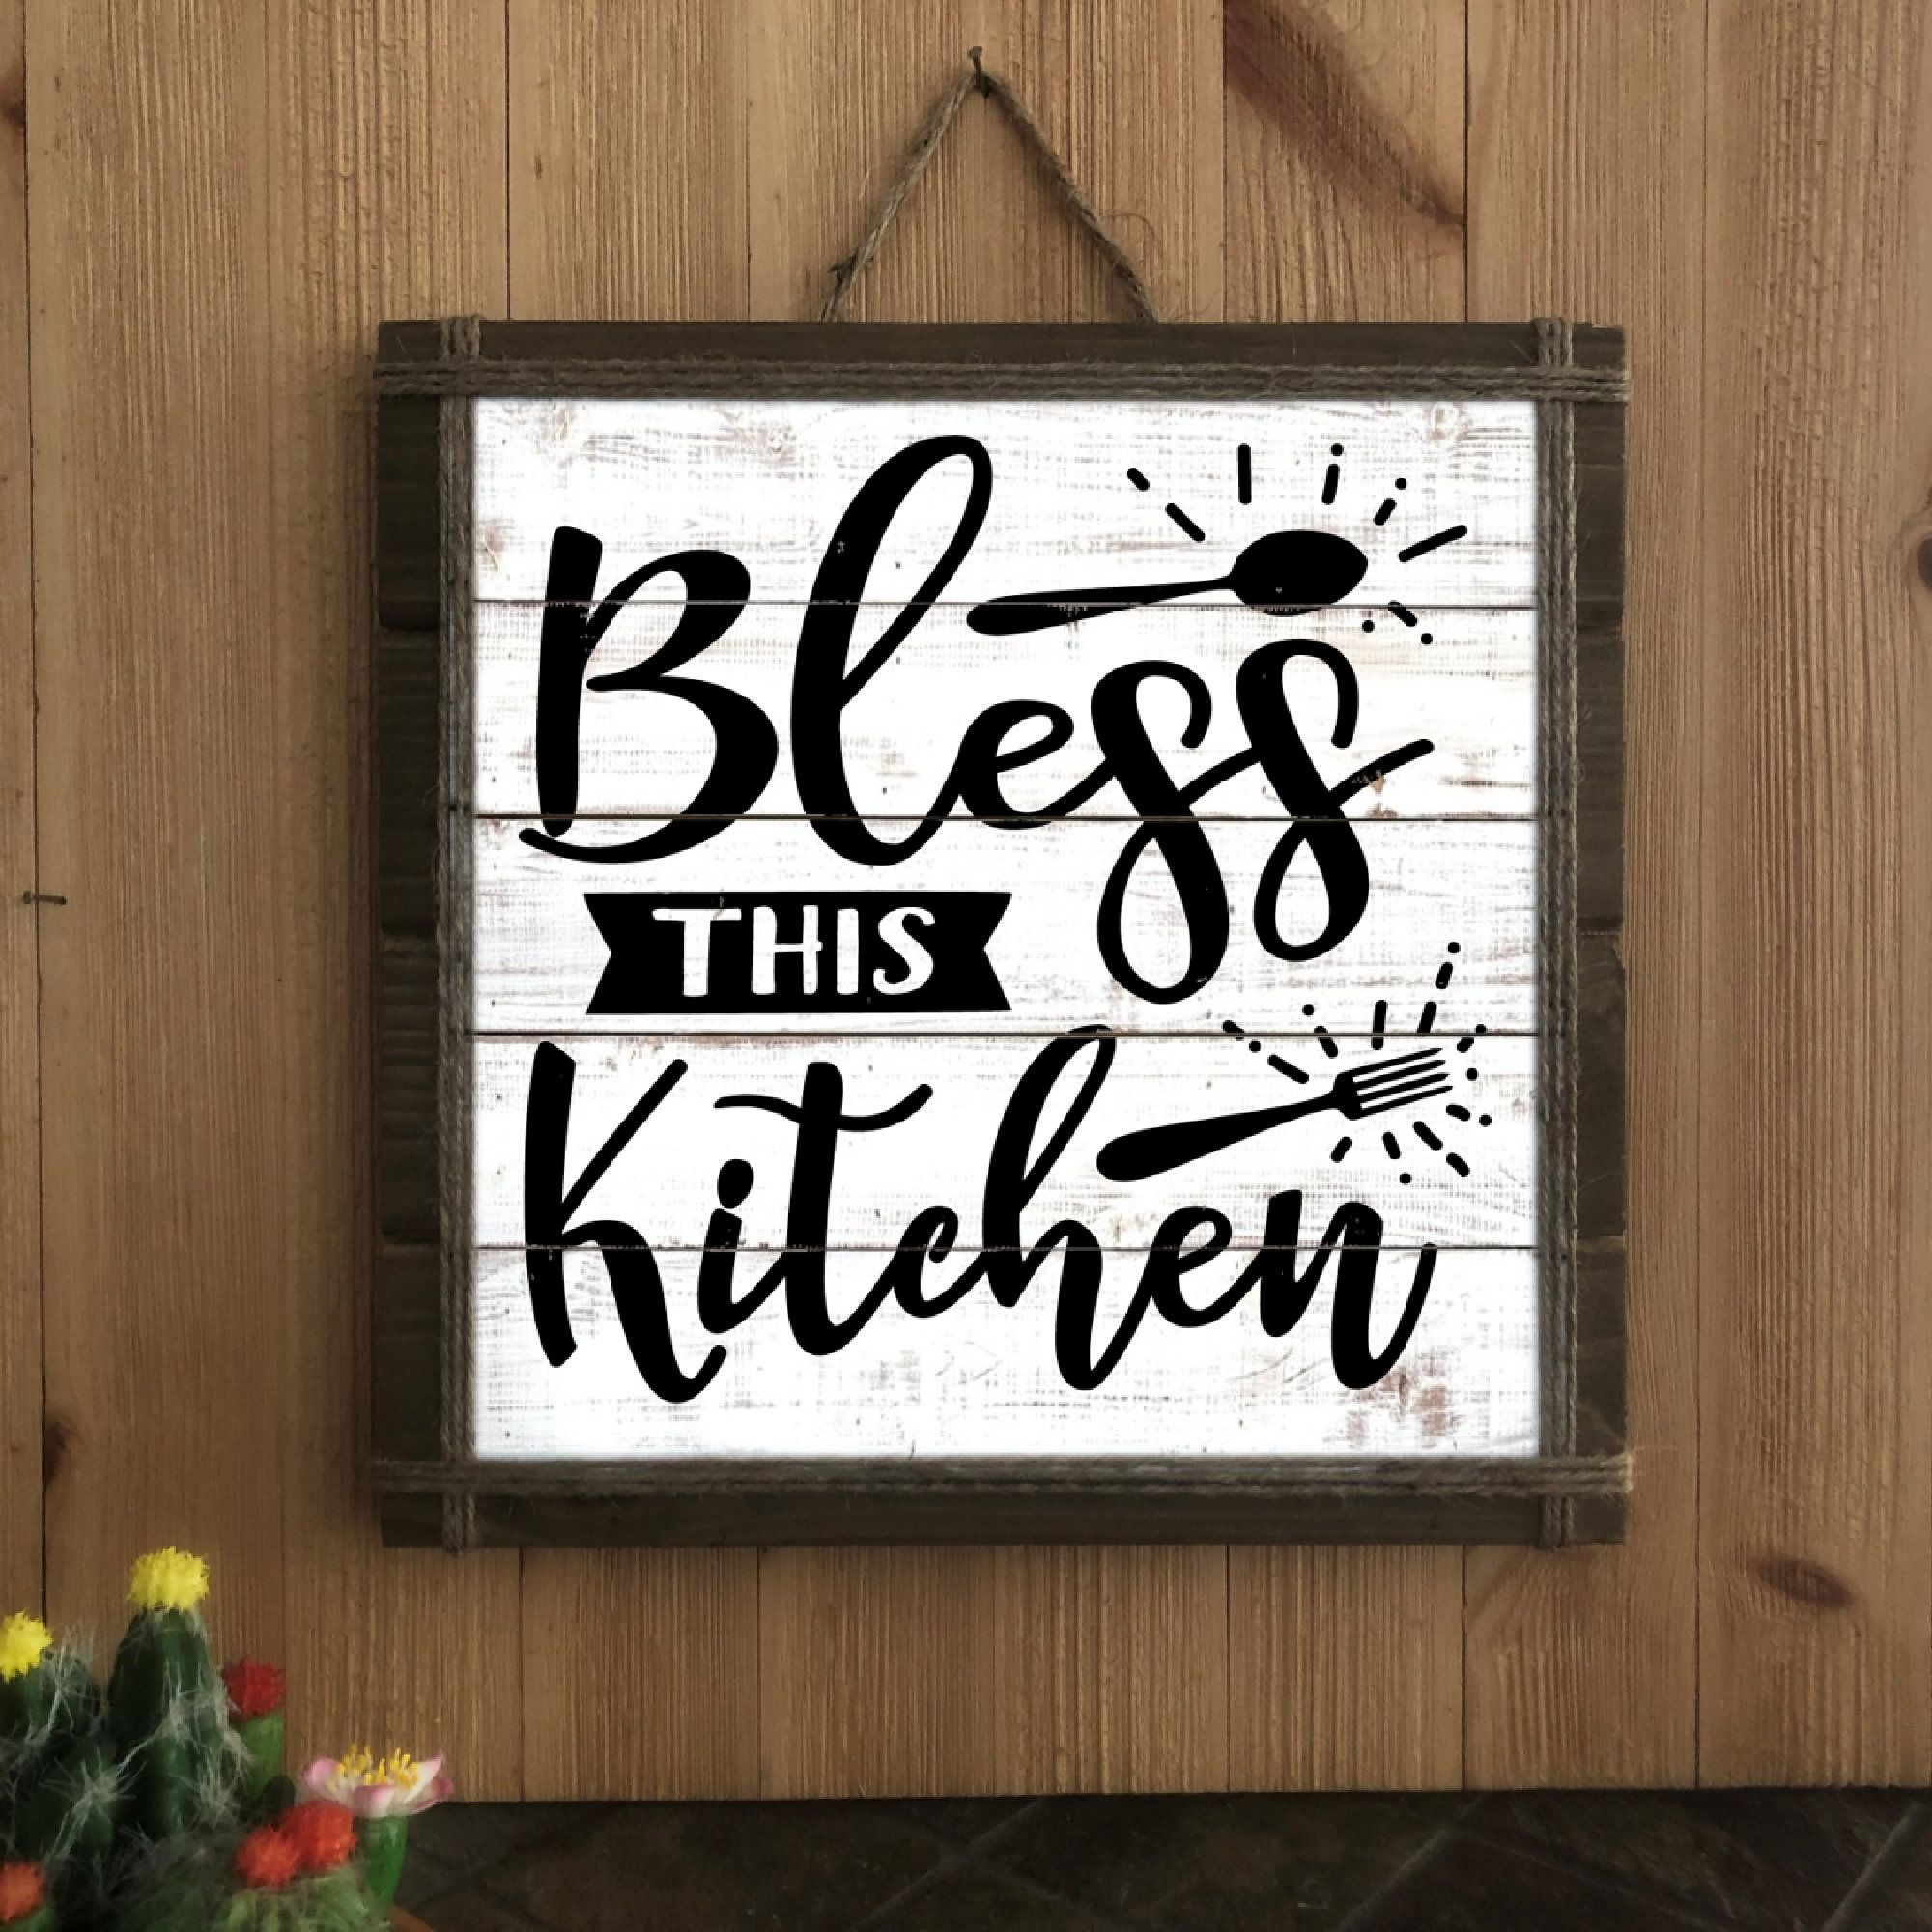 Bless This Kitchen Wood Kitchen Sign Farmhouse Kitchen Etsy Kitchen Signs Wood Kitchen Signs Kitchen Decor Signs